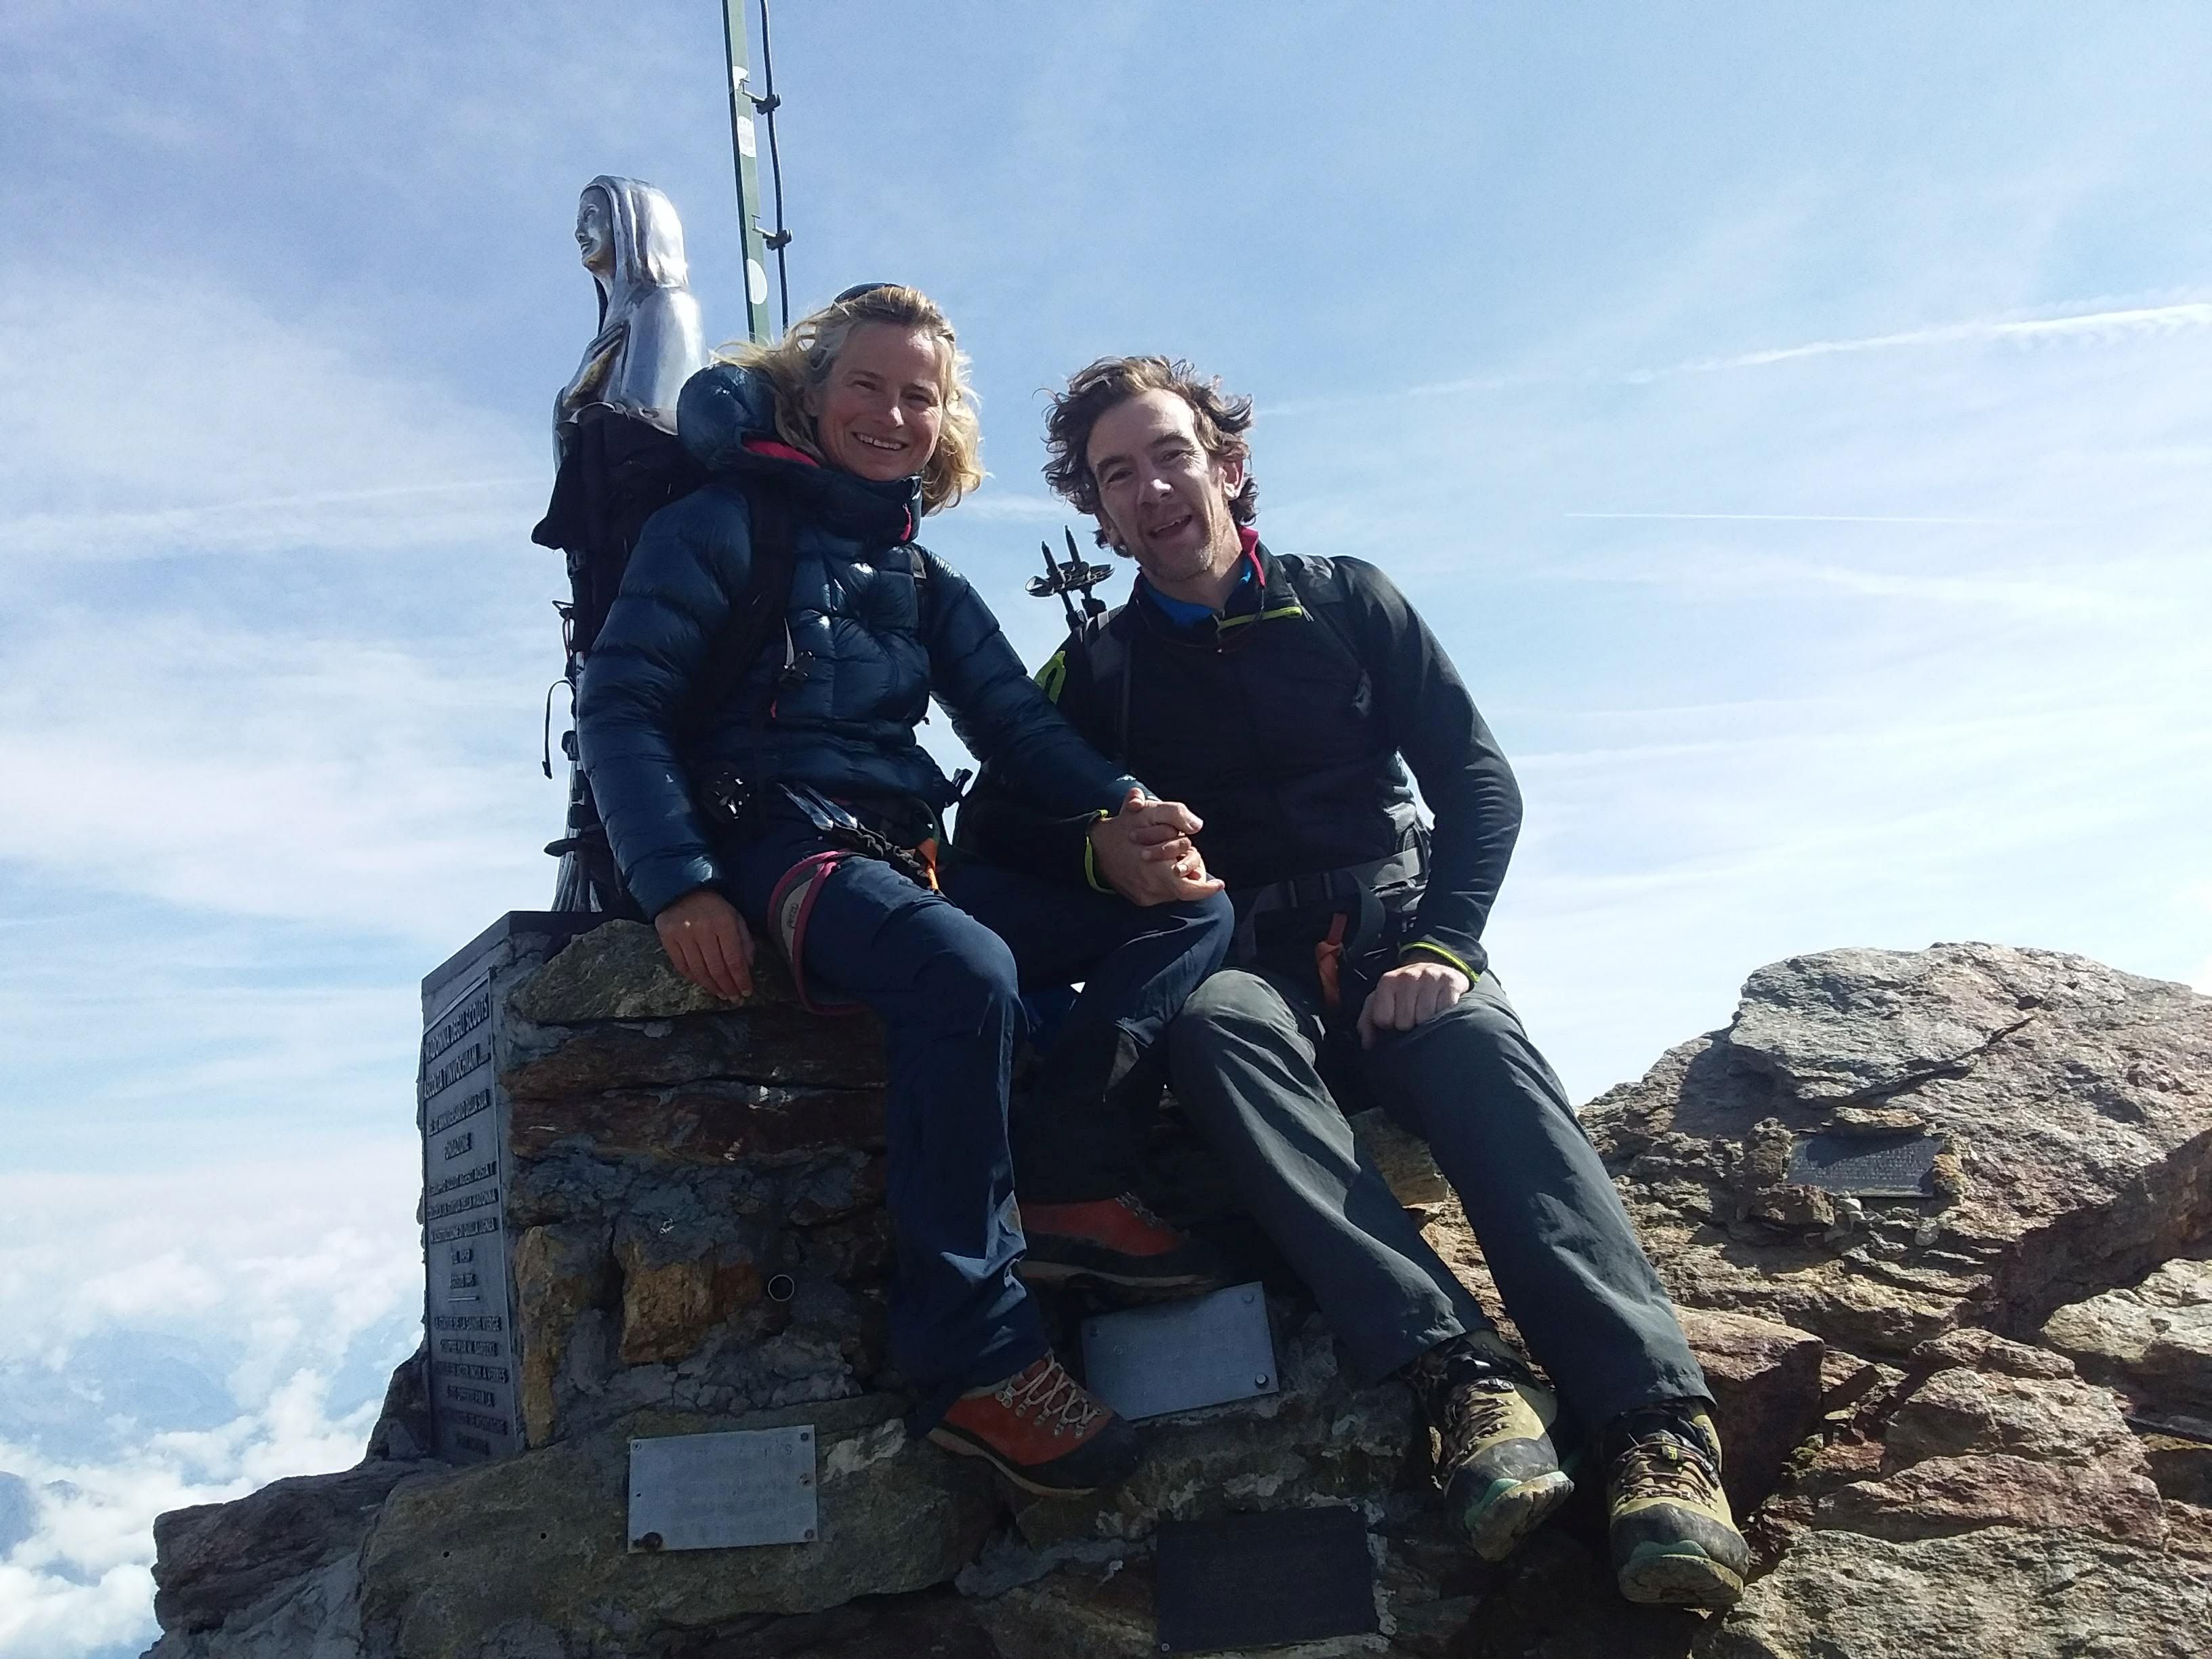 Qualified experienced guides of the Aosta Valley